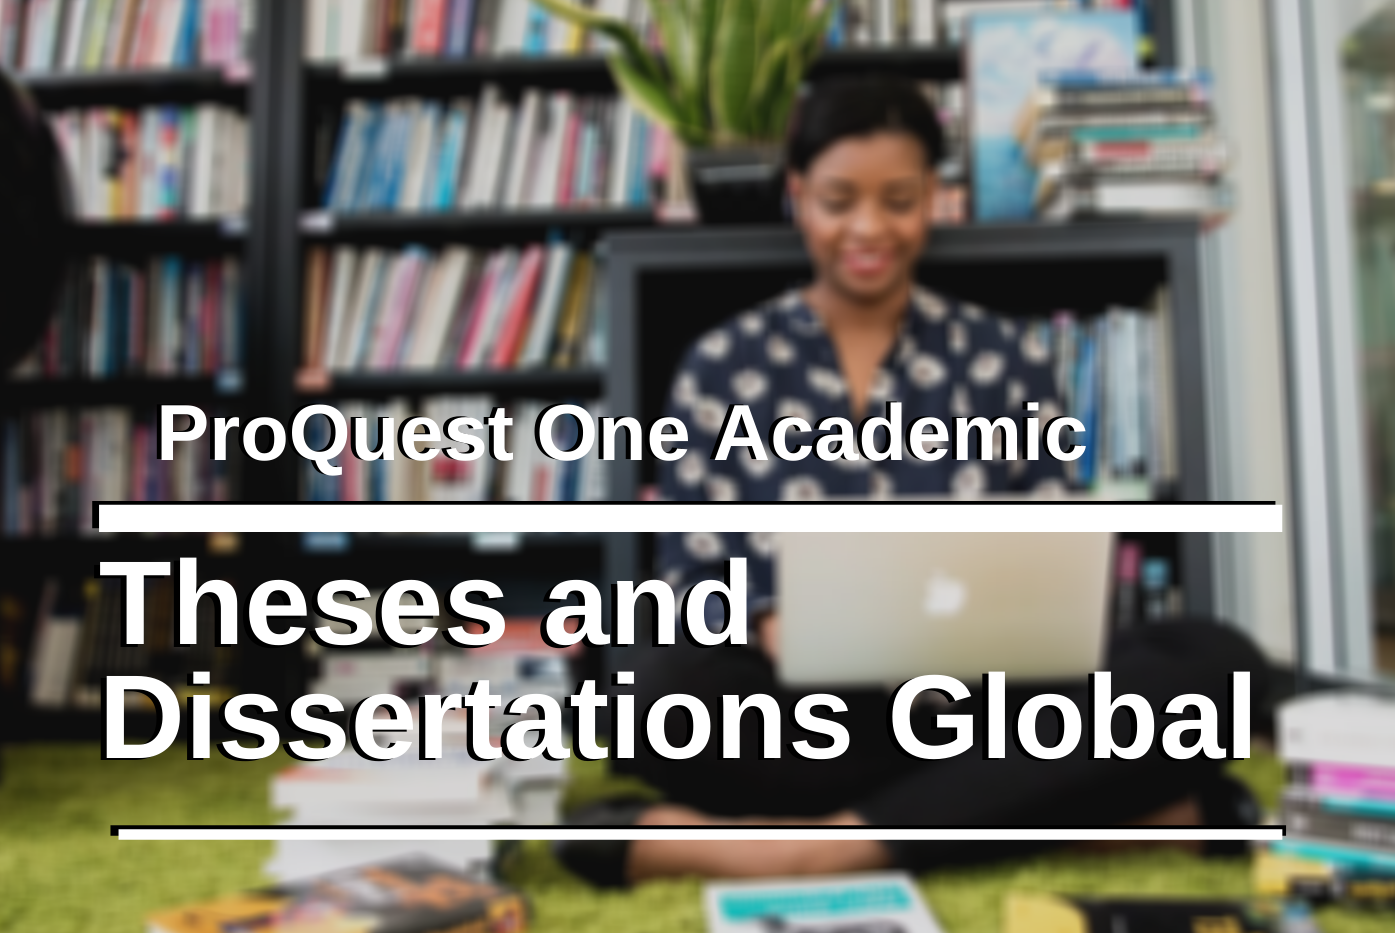 Proquest digital dissertations what is the best essay writing service